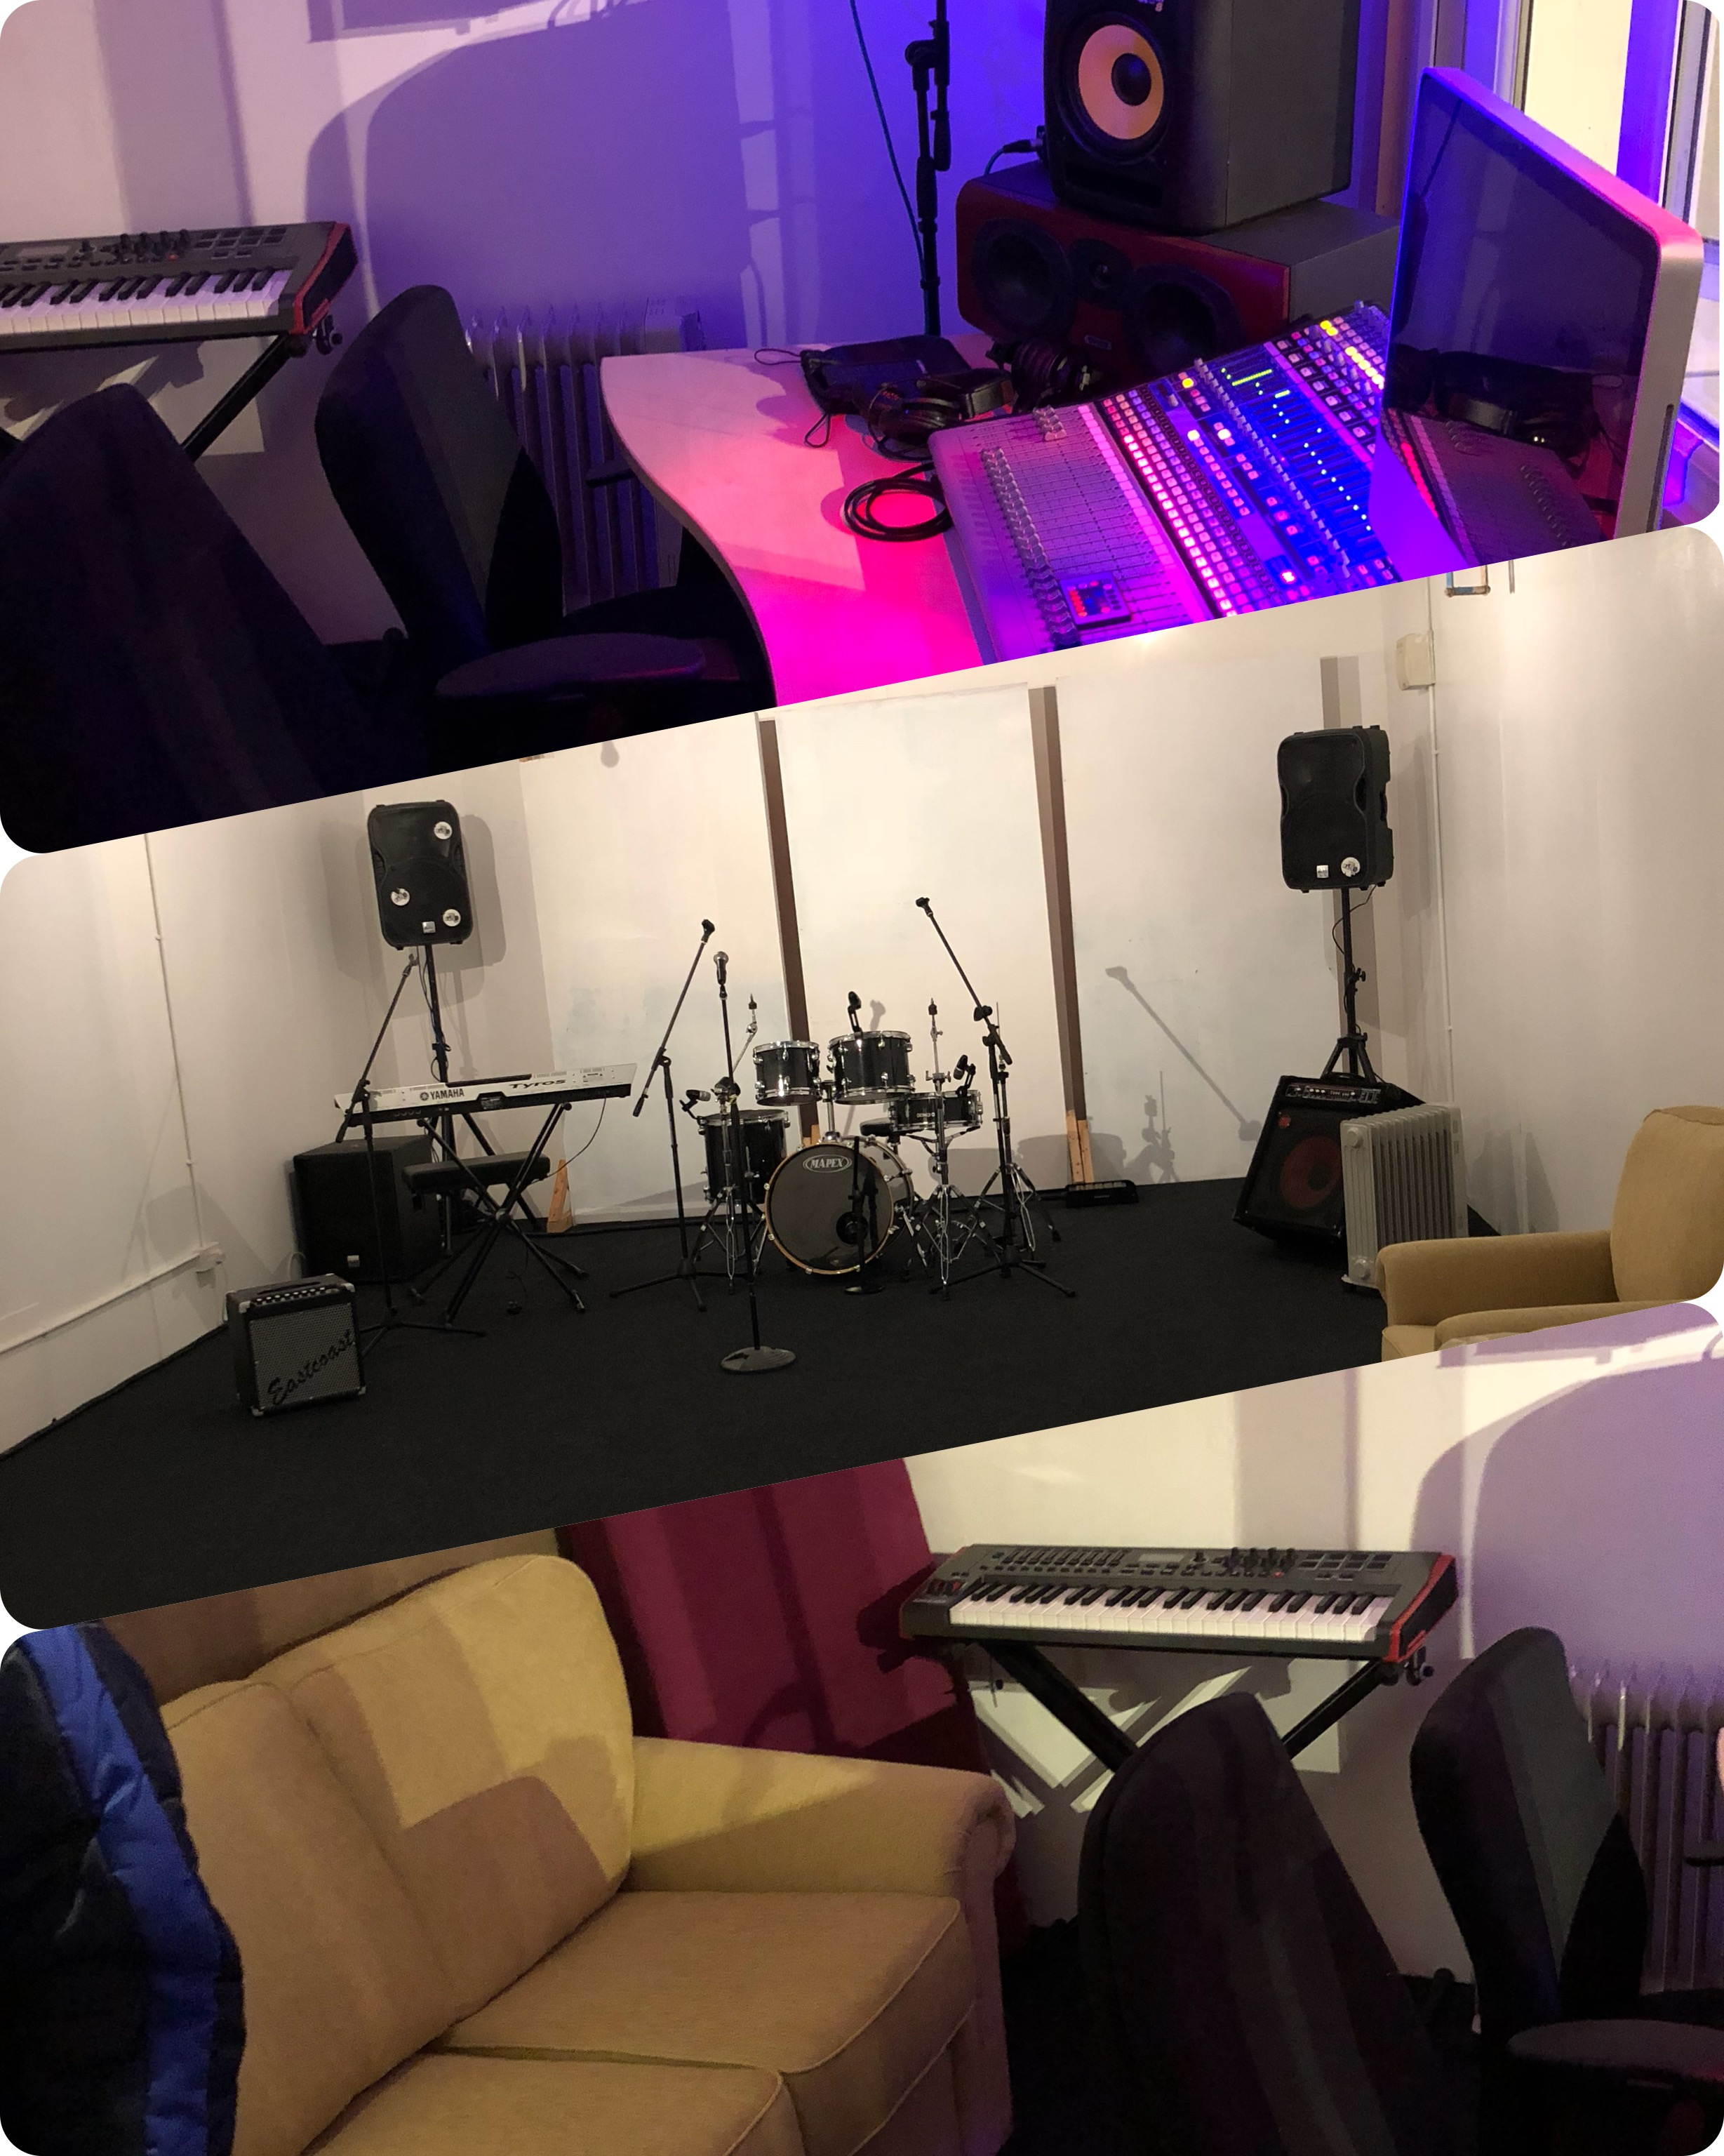 Pie Studios - Rehearsal Rooms and Recording Studios in Stockport